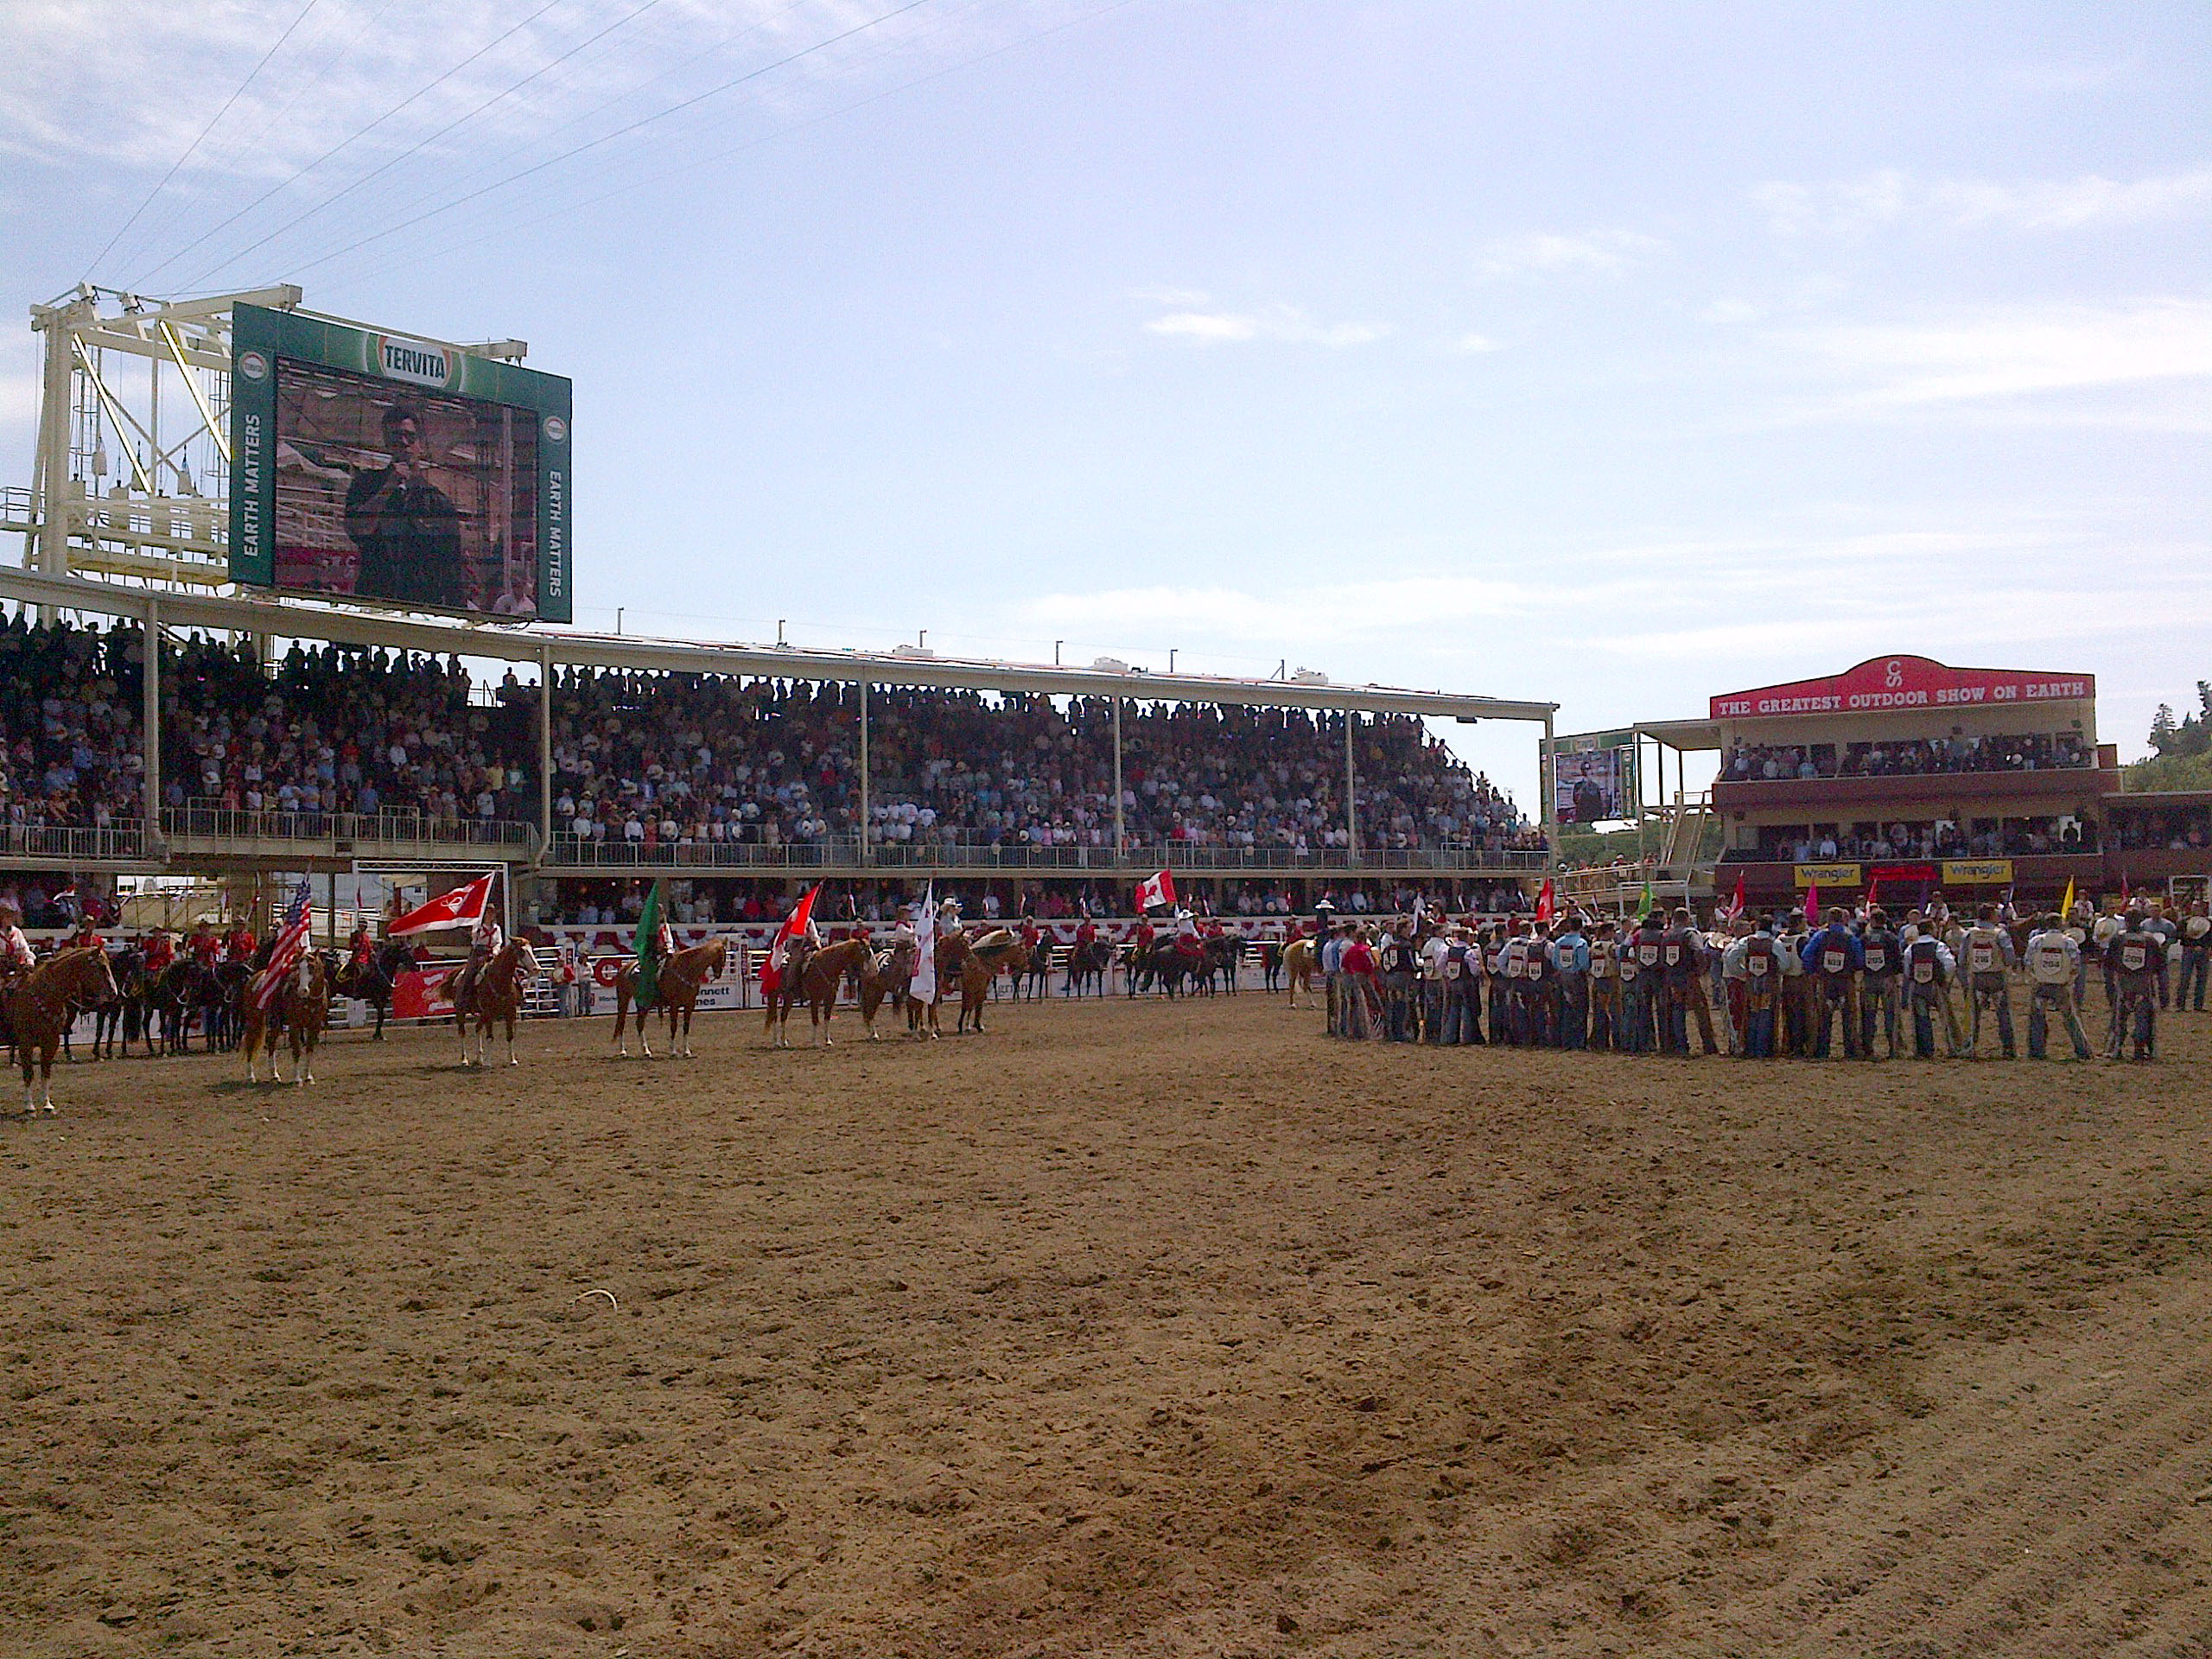 Celebrating Together At The Calgary Stampede Rural Route